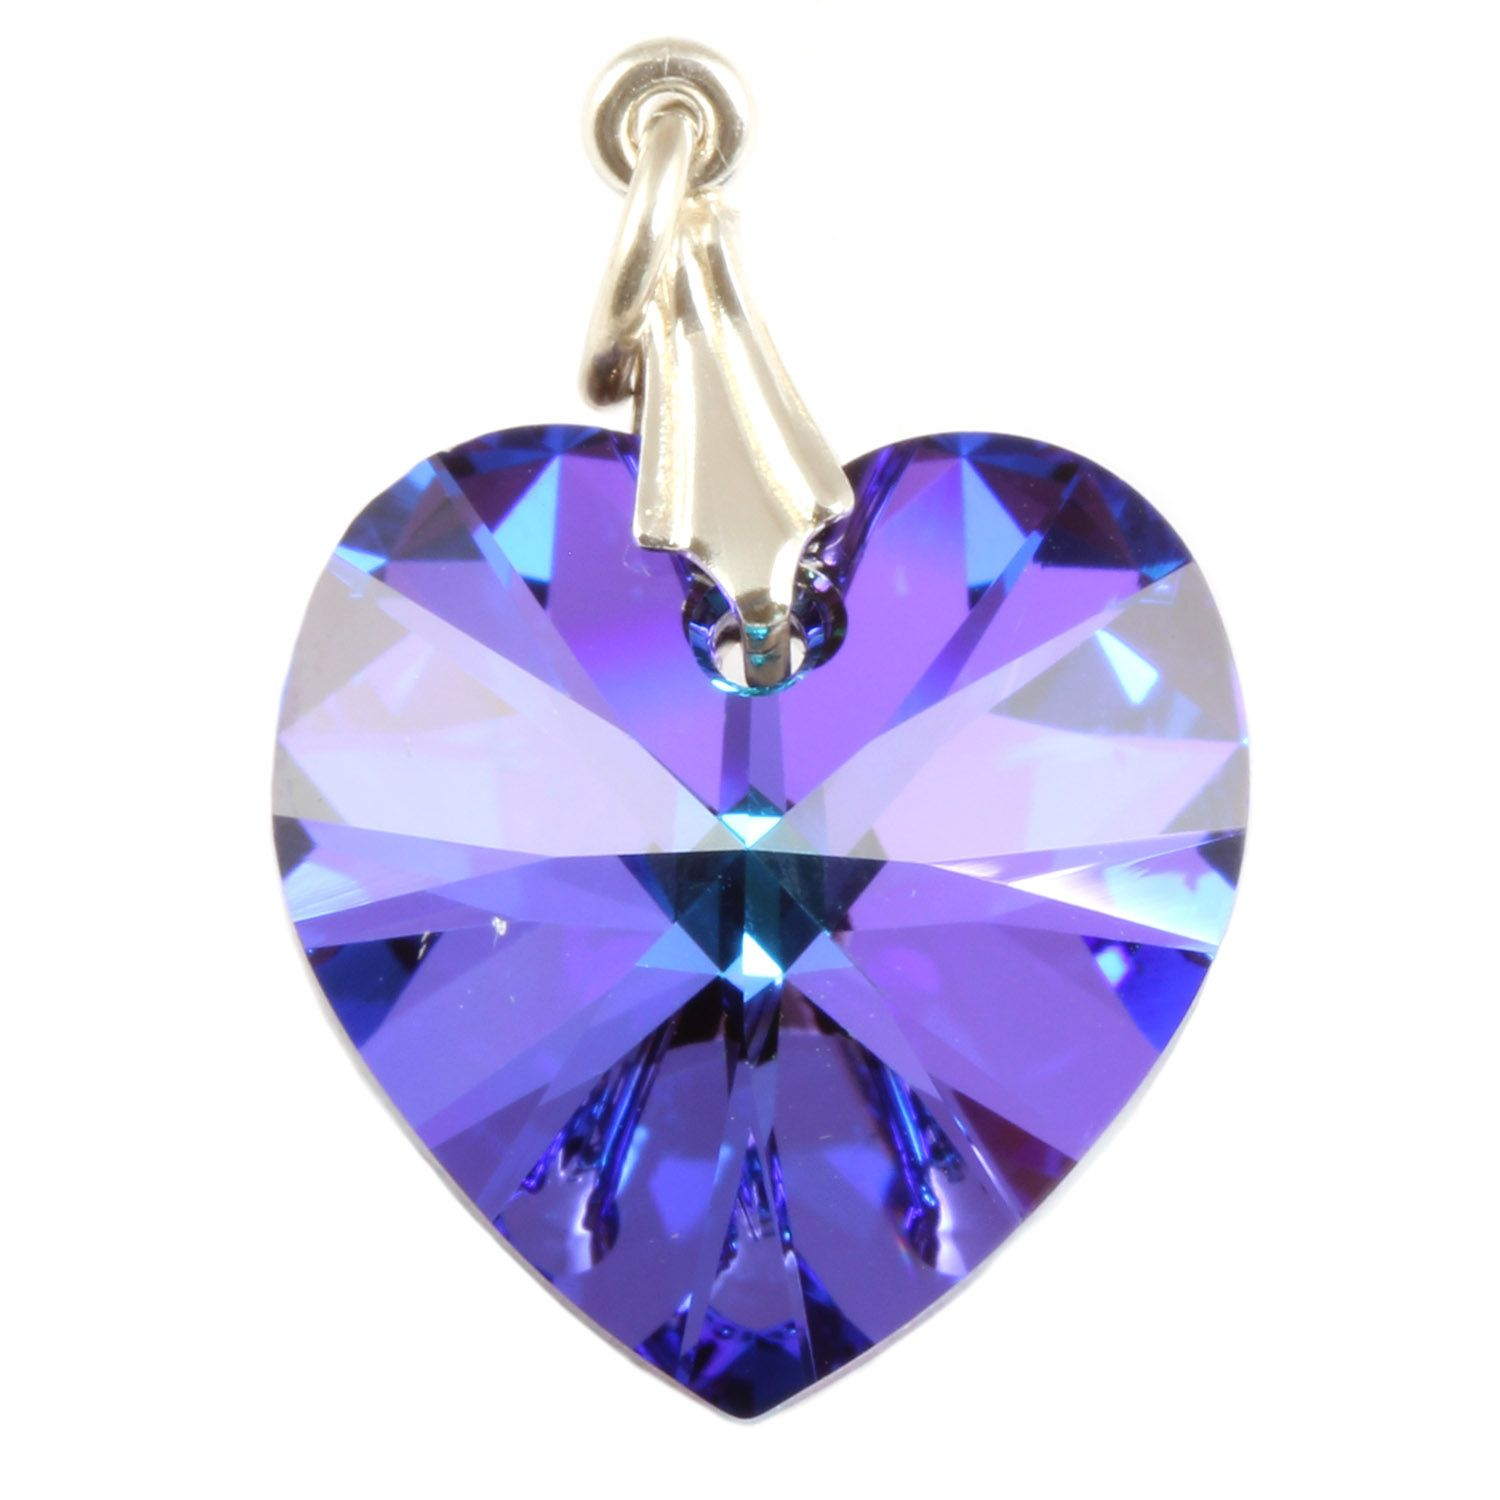 temperament clavicle aurora item blue necklace female silver austria style pendant quiet sugar simple crystal index pic